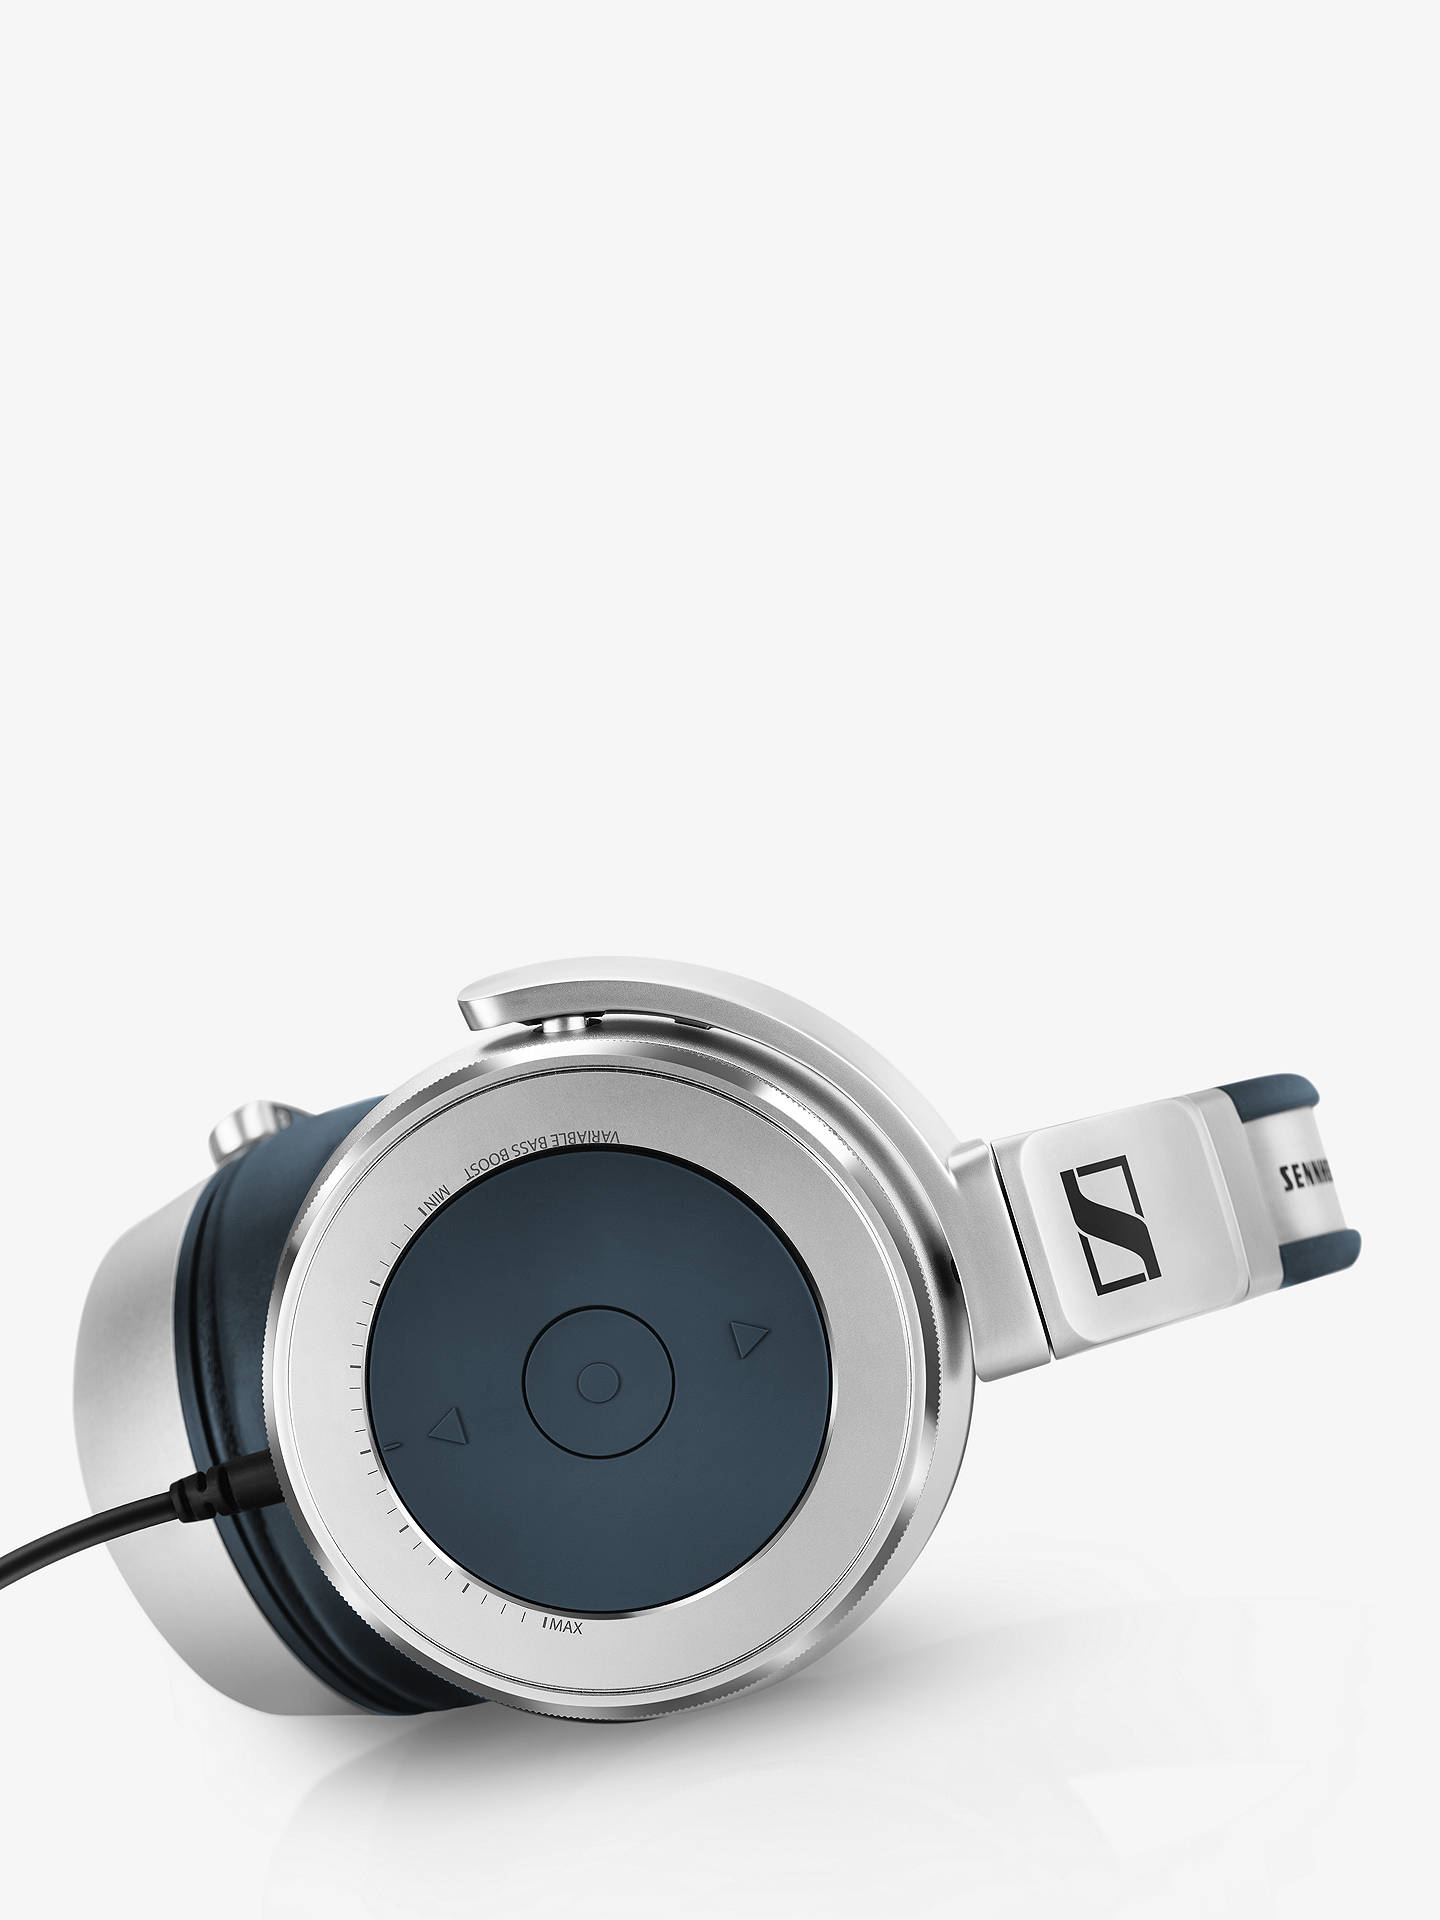 BuySennheiser HD 630VB Full-Size Headphones with Ear Cup Control Functions and In-Line Microphone, Silver/Black Online at johnlewis.com